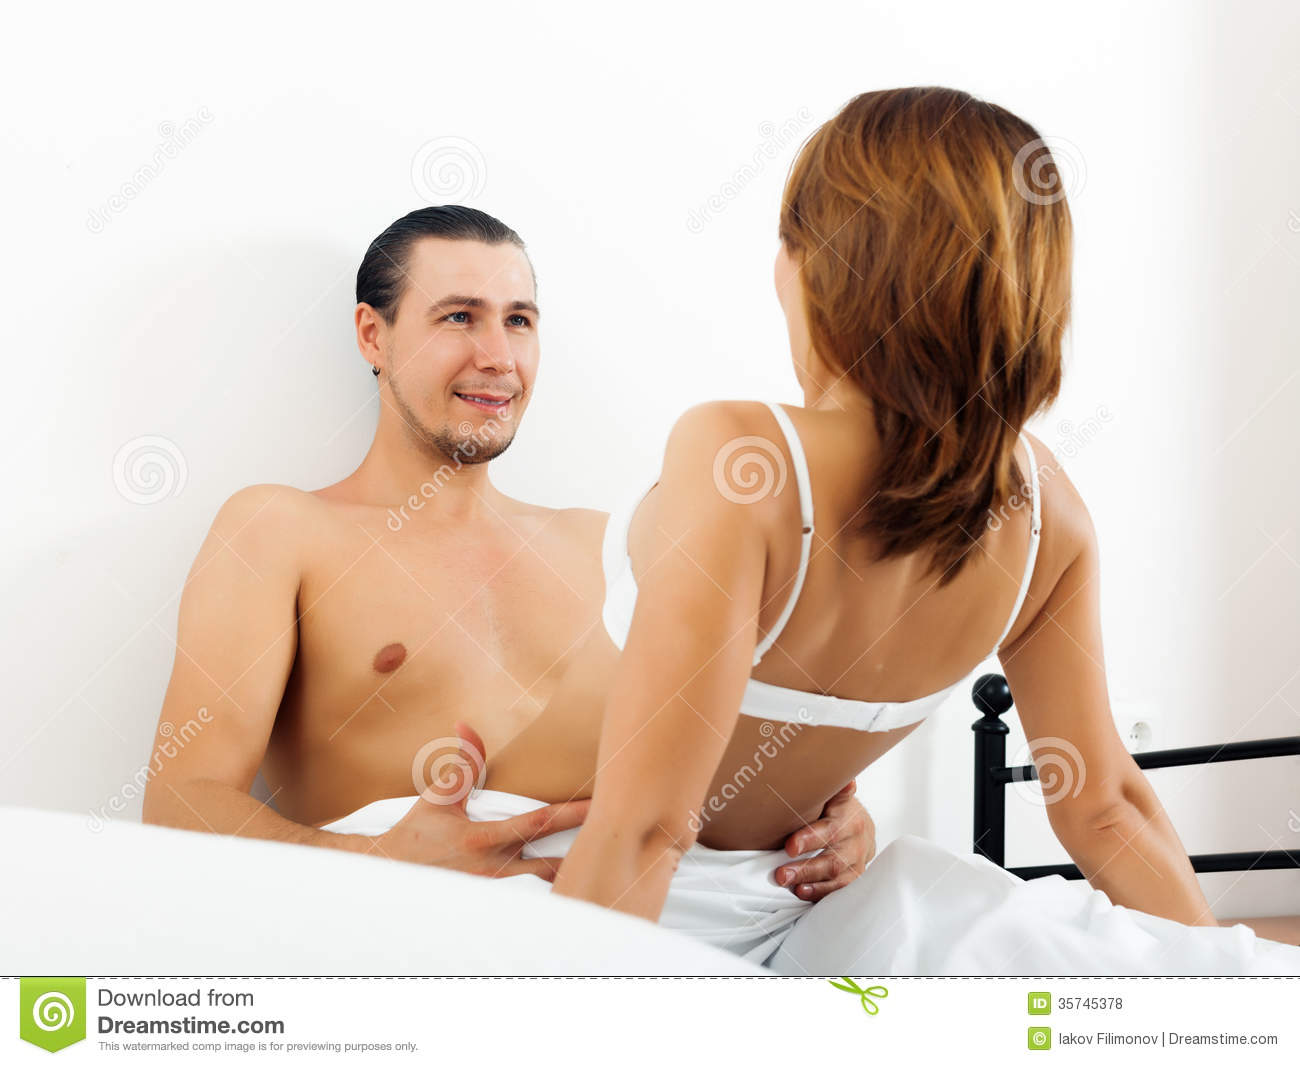 man and woman in bed nude